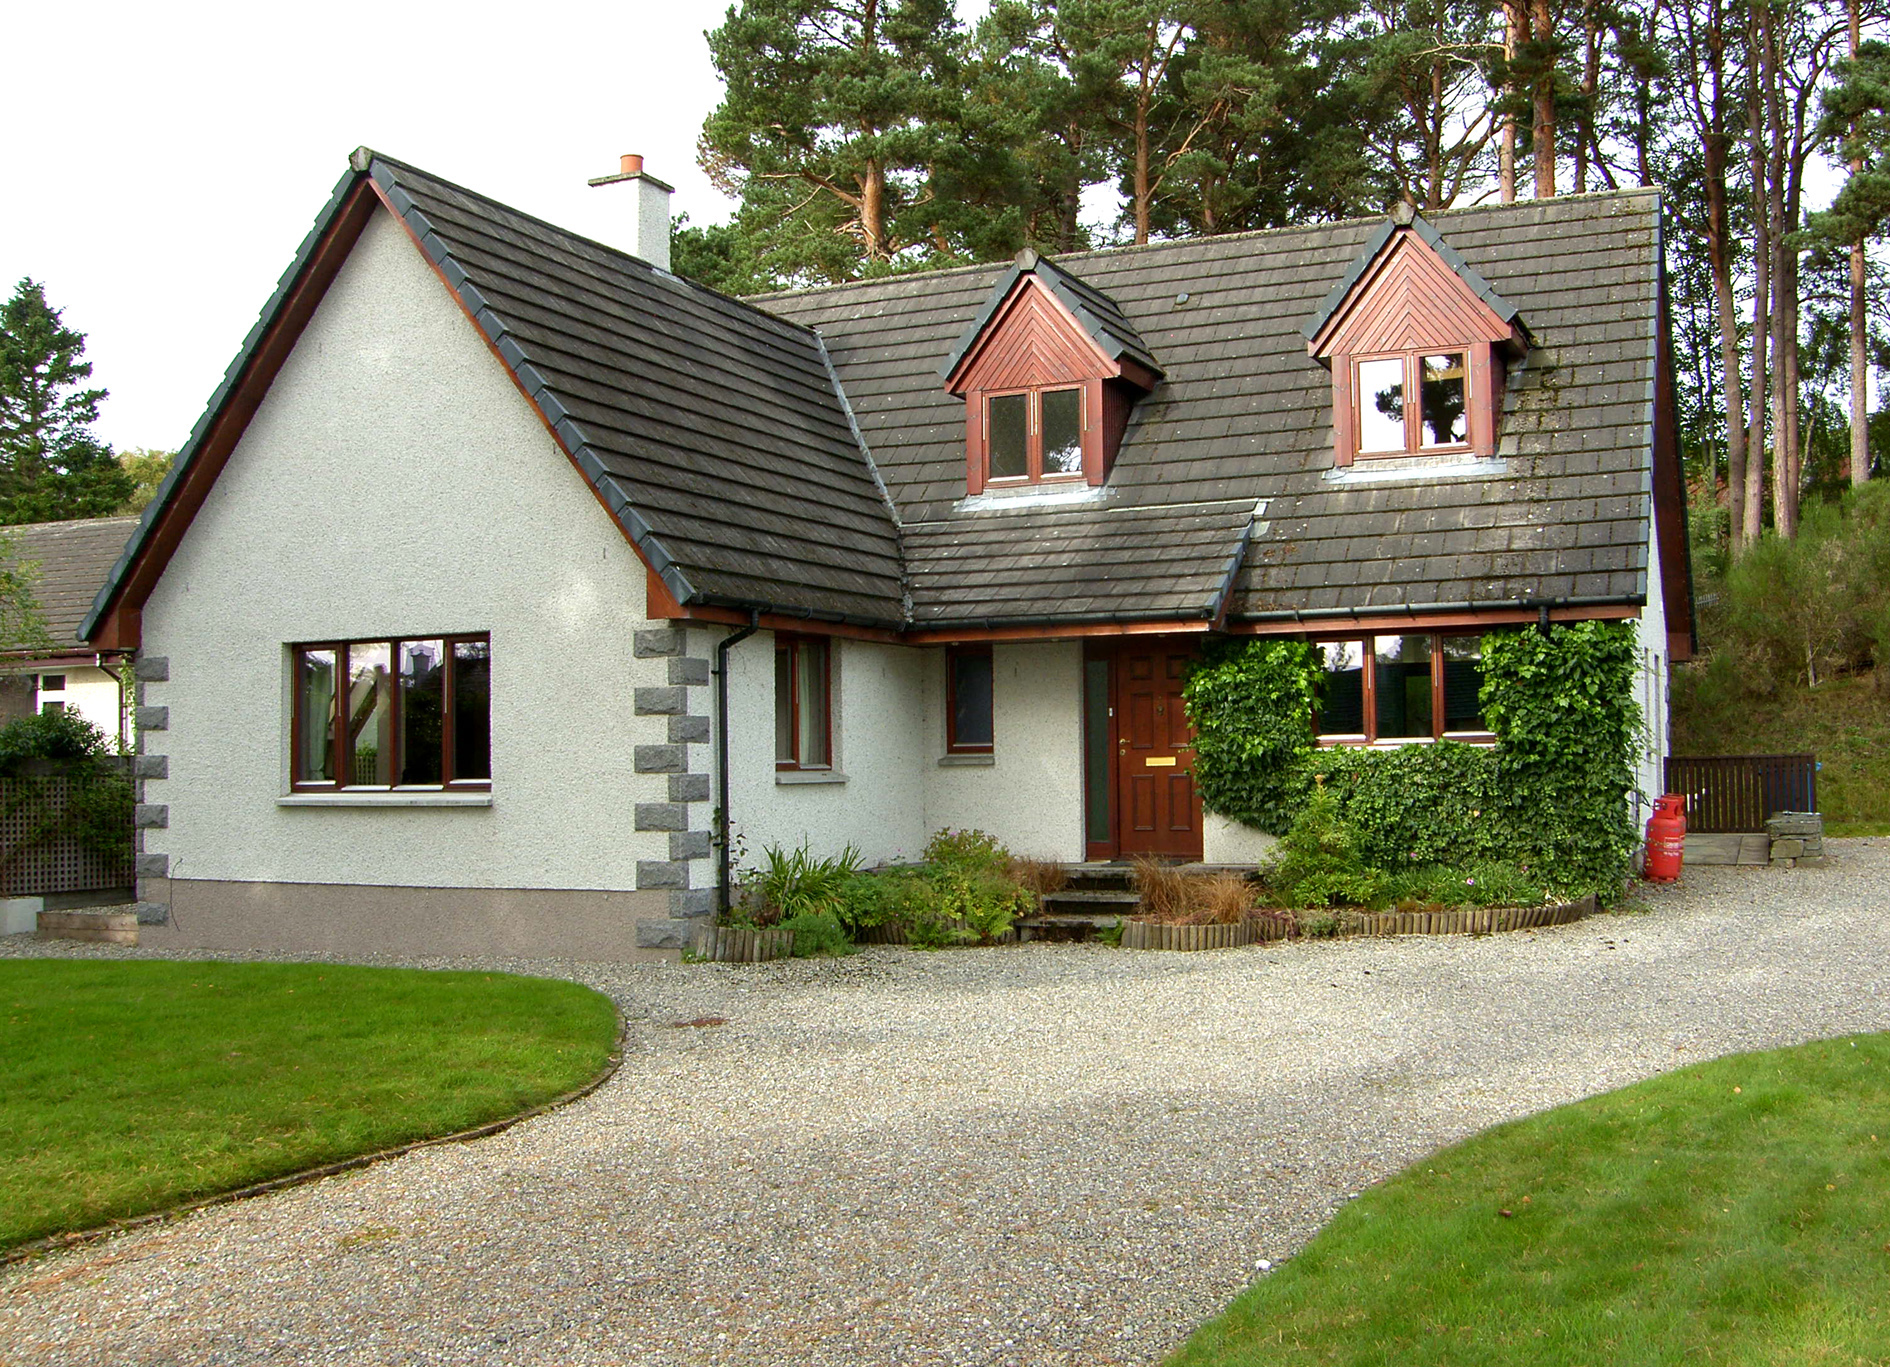 3 Bedrooms Detached House for sale in Newtonmore, PH20 1DT